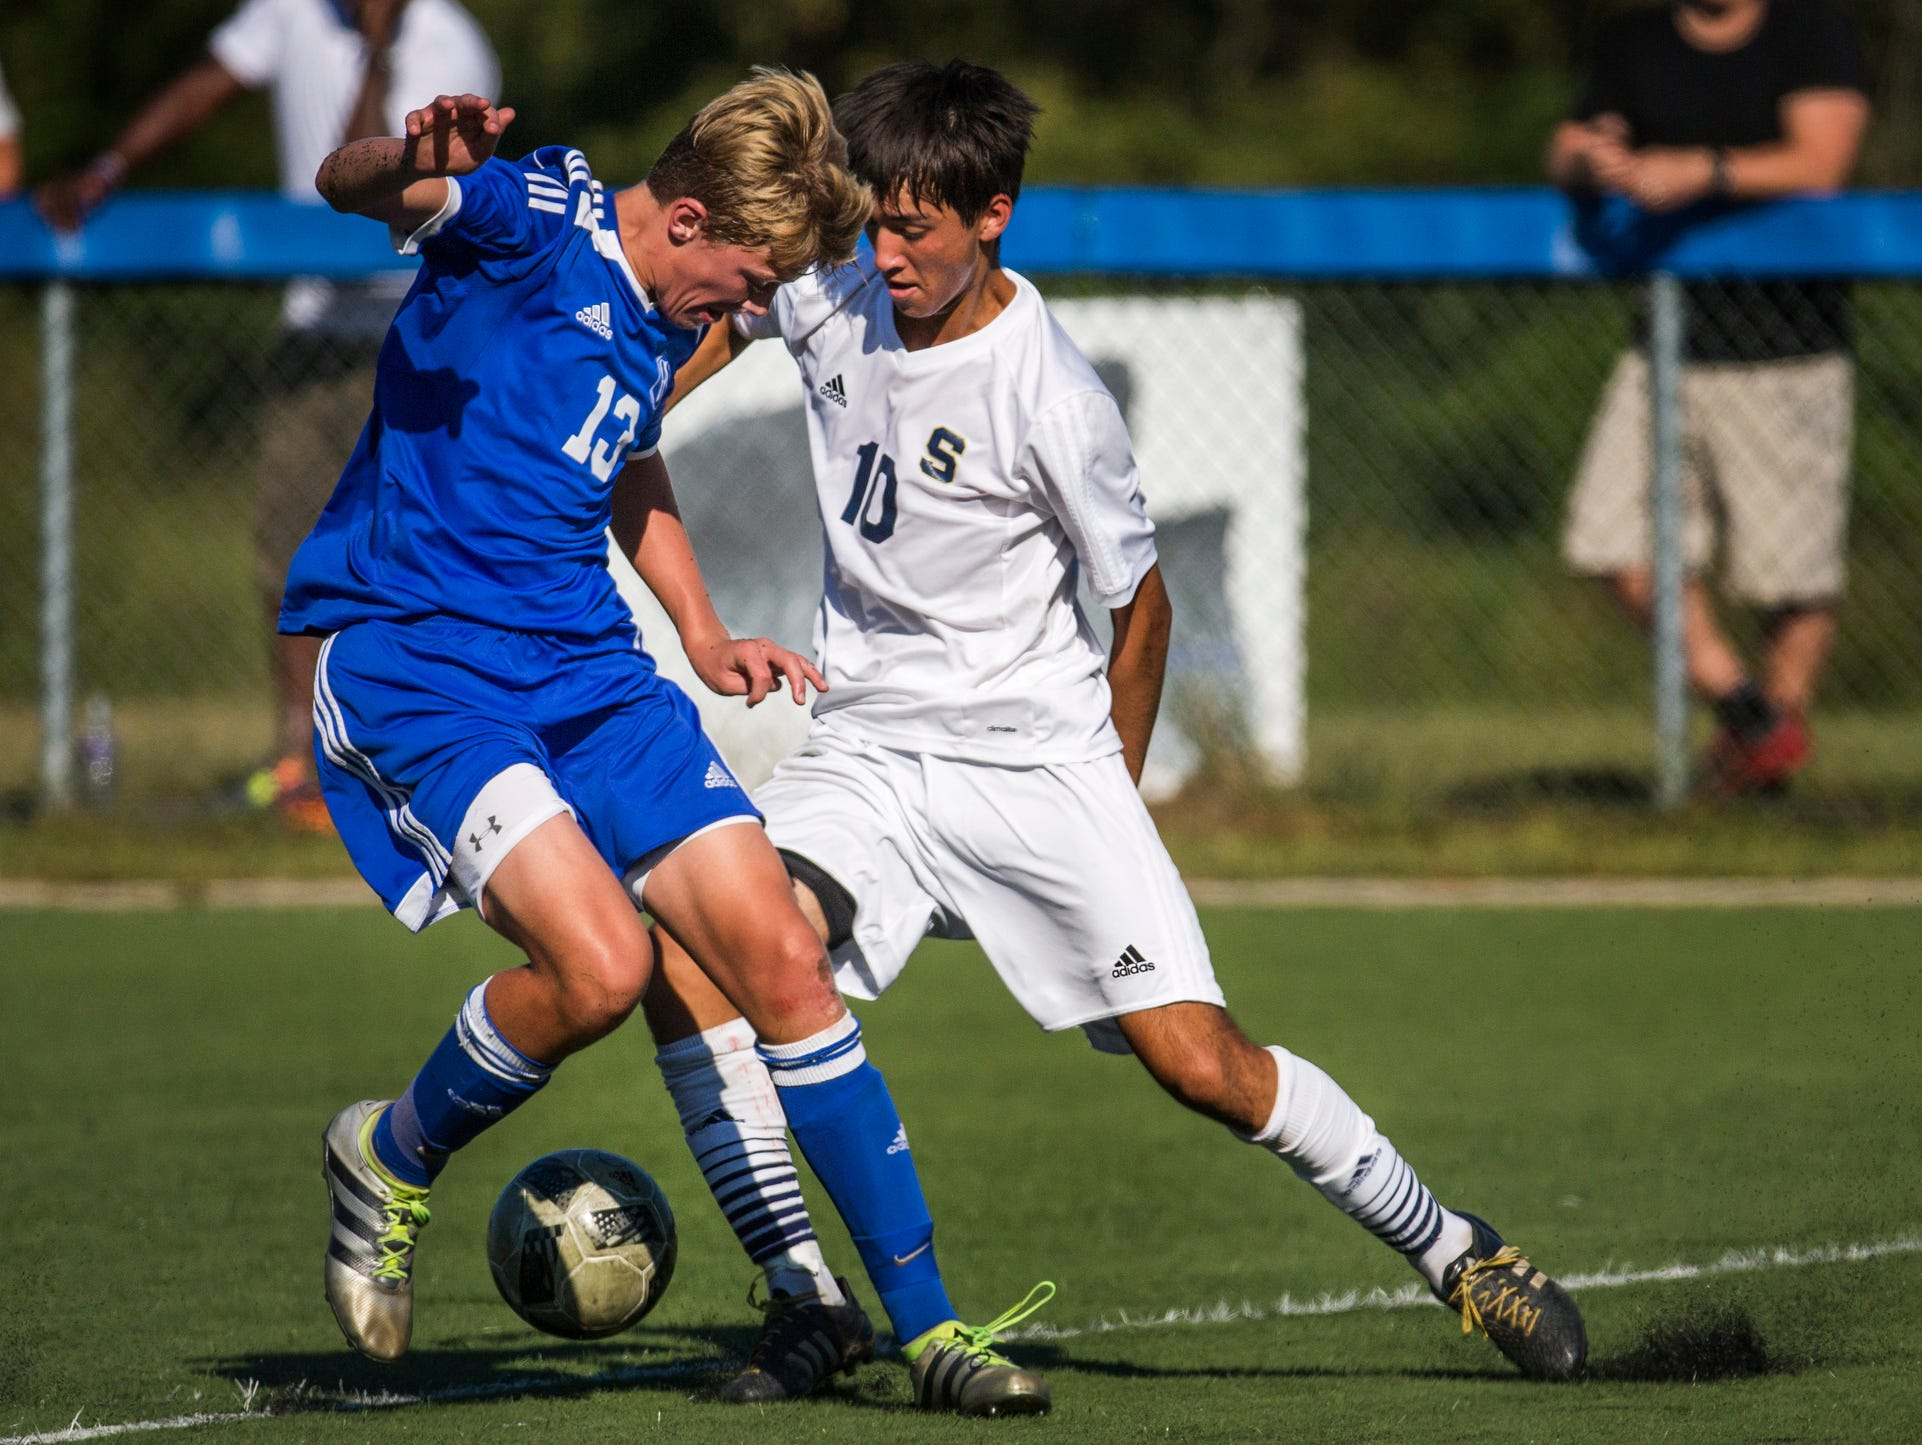 Salesianum's Gavin Ford (No. 10) cuts behind Wilmington Charter's Graeme Newcombe (No. 13) as he positions himself for a shot on goal in the first half of Salesianum's 1-0 win over Wilmington Charter at the Hockessin Soccer Club in Hockessin on Thursday afternoon. Ford scored the only goal of the game on the play.